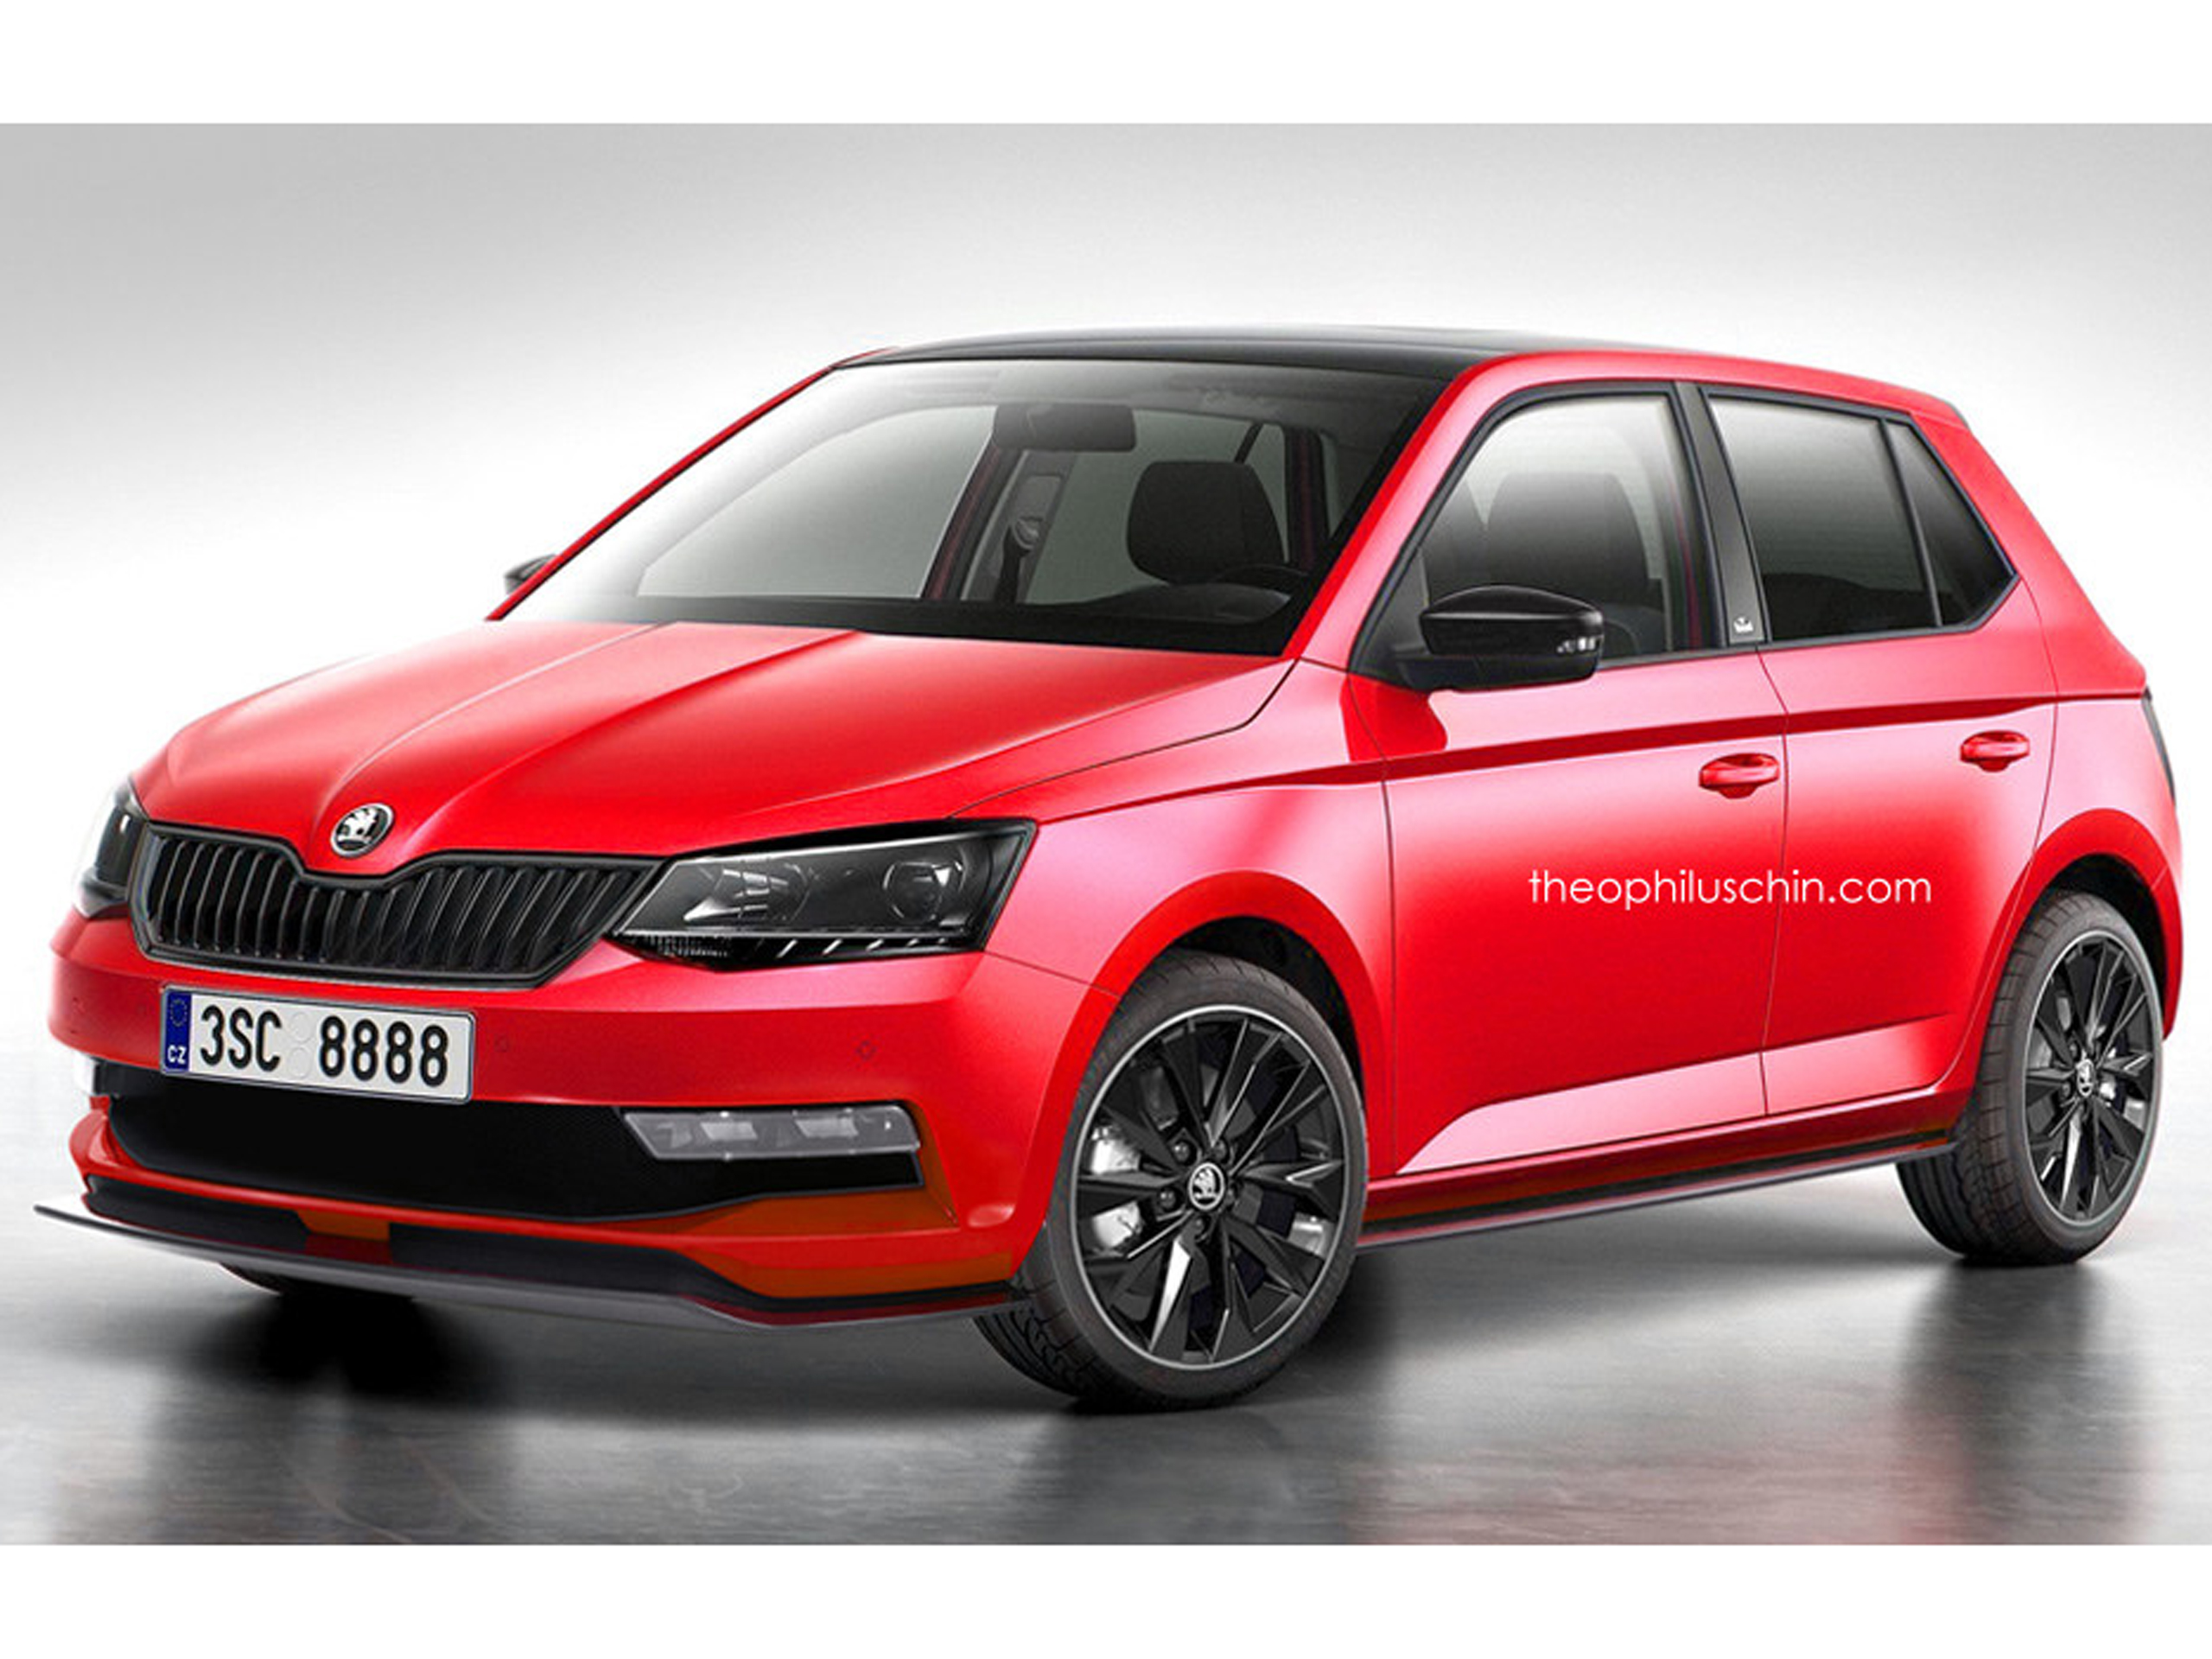 skoda fabia monte carlo 2015 kleinwagen mit sportpaket. Black Bedroom Furniture Sets. Home Design Ideas